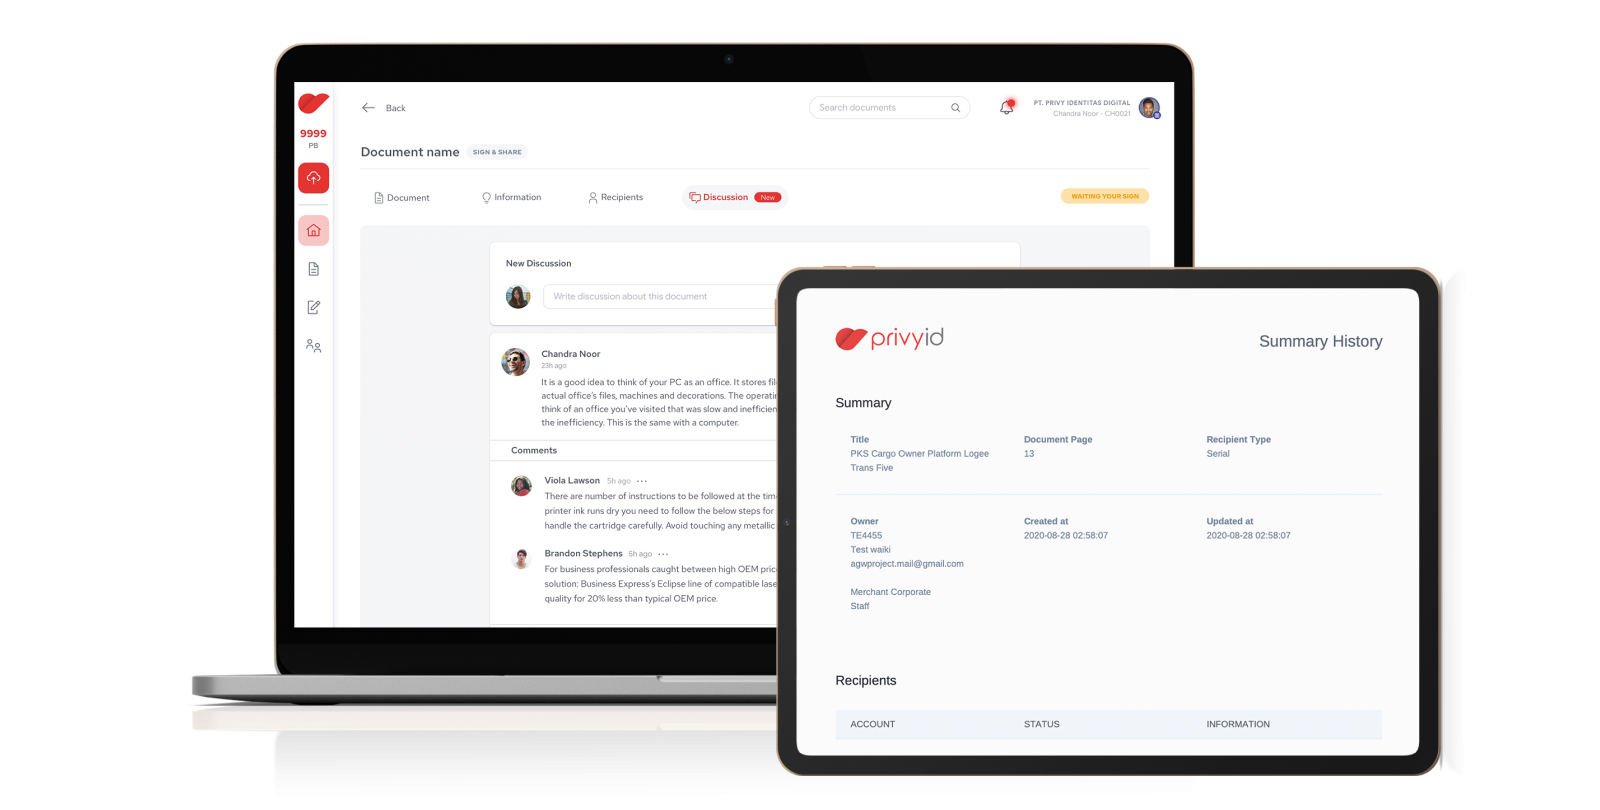 PrivyID Enterprise Suite Feature: Tracking and Managing Documents